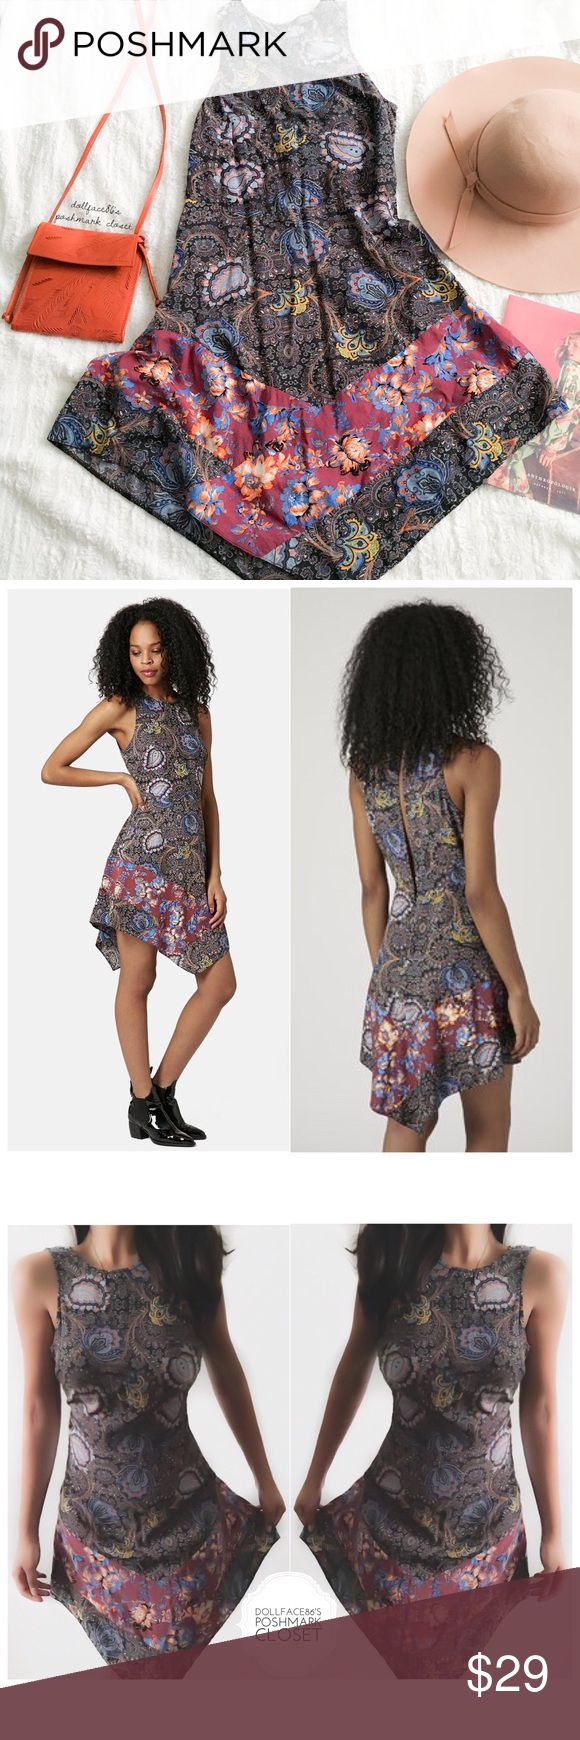 """Topshop Paisley Boho Dress ✦   ✦{I am not a professional photographer, actual color of item may vary ➾slightly from pics}  ❥chest:16"""" ❥waist:14"""" ❥length:31.5""""/38"""" ❥hips:23"""" ➳material/care:viscose/machine wash ➳fit:in my opinion closer to 4 ➳condition:gently used  ✦20% off bundles of 3/more items ✦No Trades  ✦NO HOLDS ✦No lowball offers/sales are final  ✦‼️BE A RESPONSIBLE BUYER PLS ASK QUESTIONS/USE MEASUREMENTS TO MAKE SURE THIS WILL WORK FOR {YOU} BEFORE PURCHASING ‼️ Topshop Dresses"""